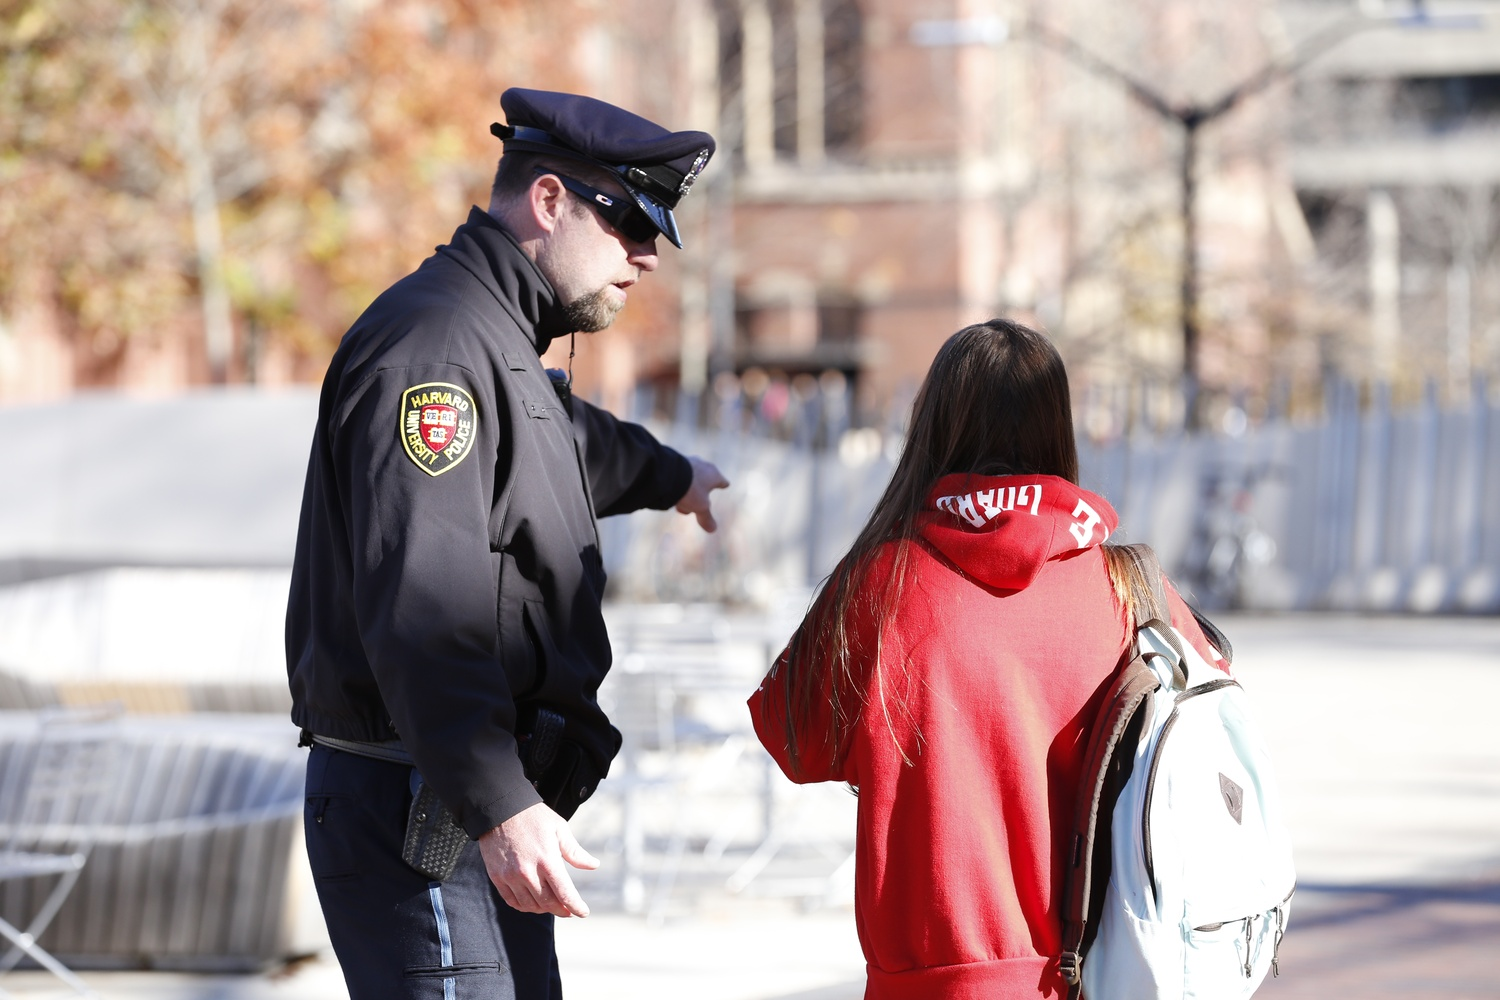 A Harvard University Police officer directed people towards Annenberg Hall, which stayed open following reports of an unconfirmed bomb threat in November.